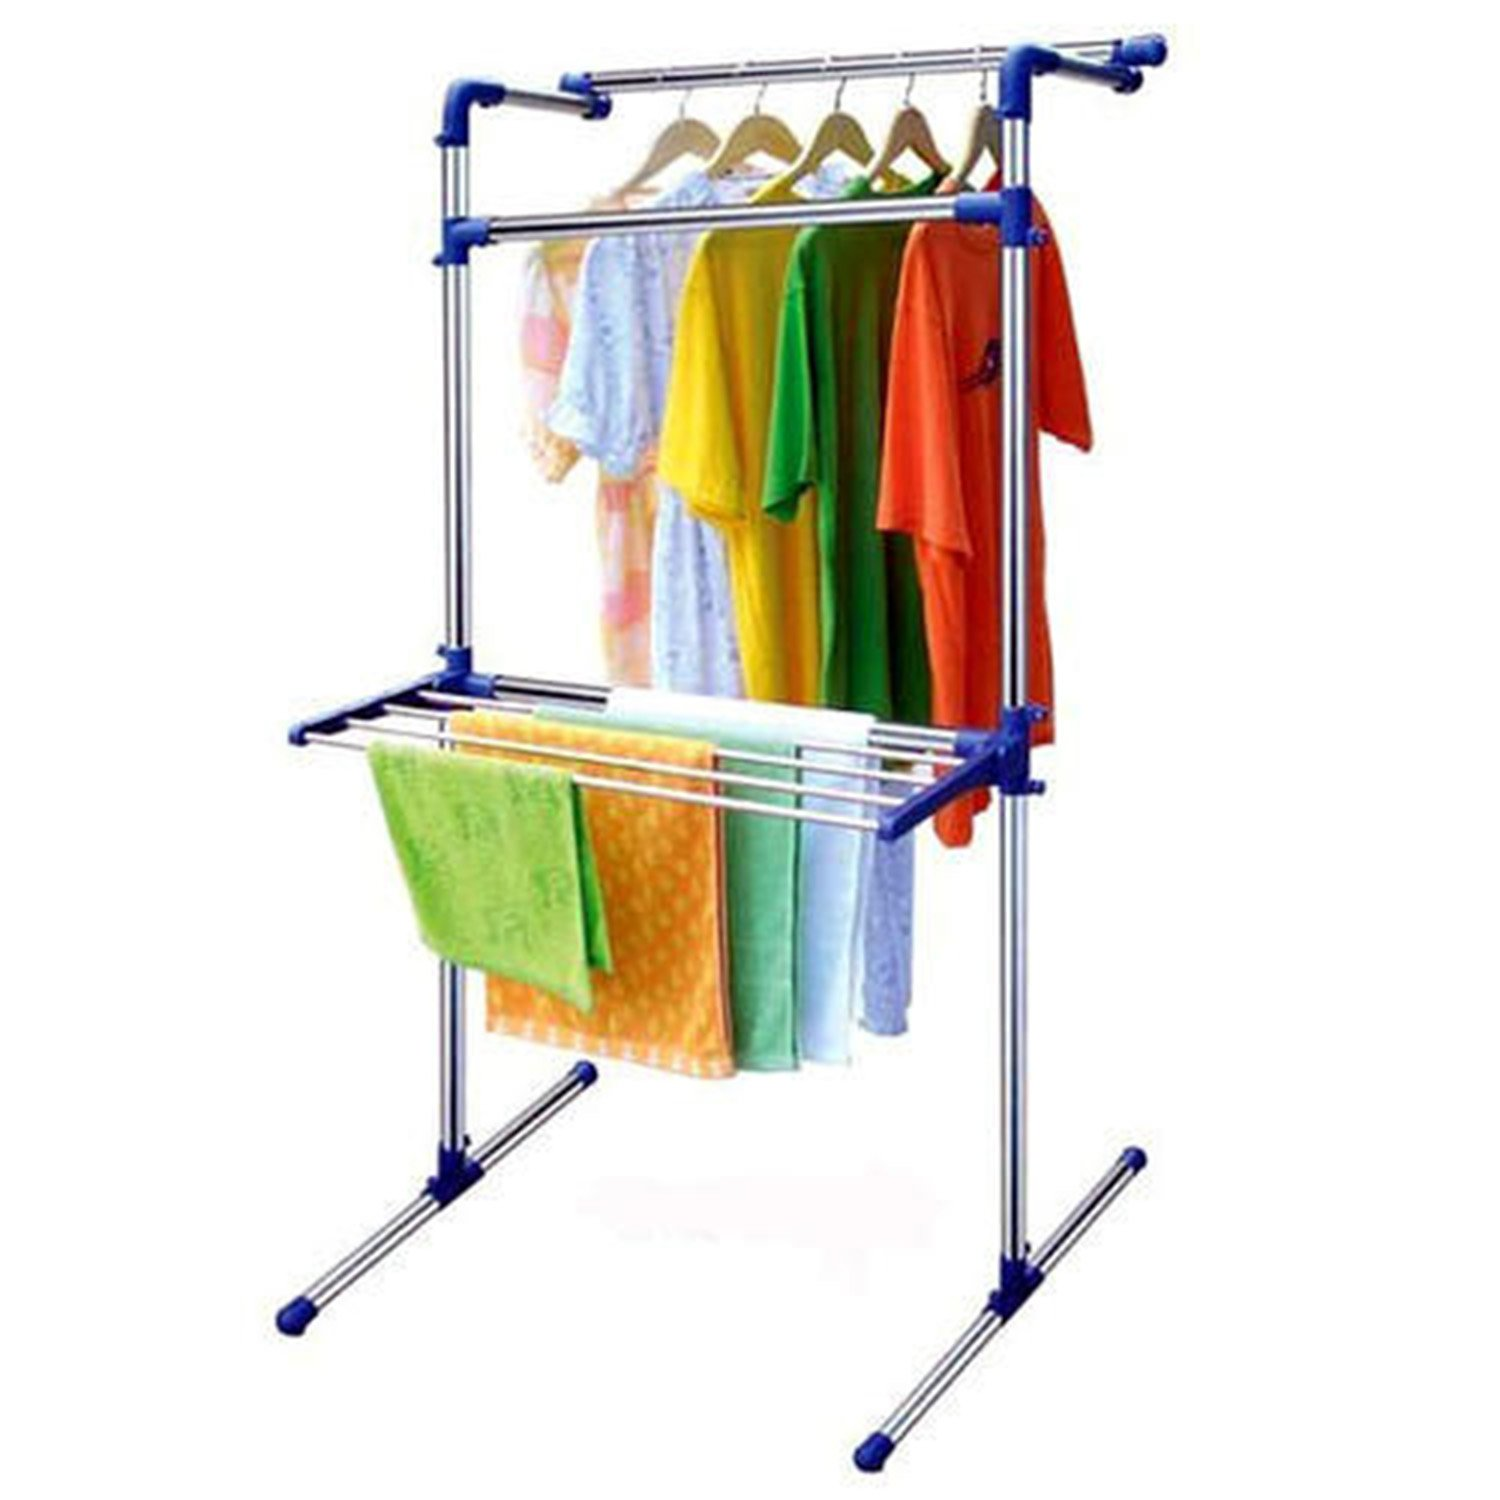 Hanger Stainless Steel Portable Multifunctional Cloth Dryer Stand Standing Multifunction 147x72x78cm Blue Home Kitchen